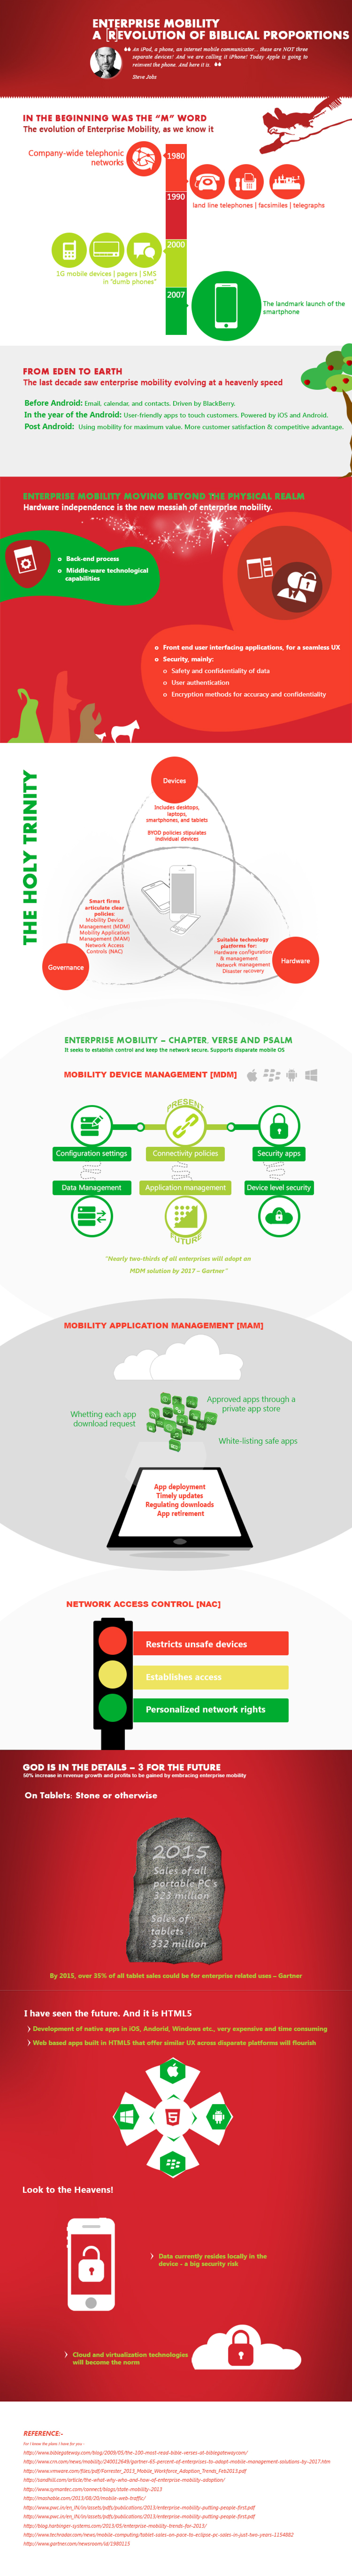 Enterprise Mobility – A (R)evolution of Biblical Proportions Infographic